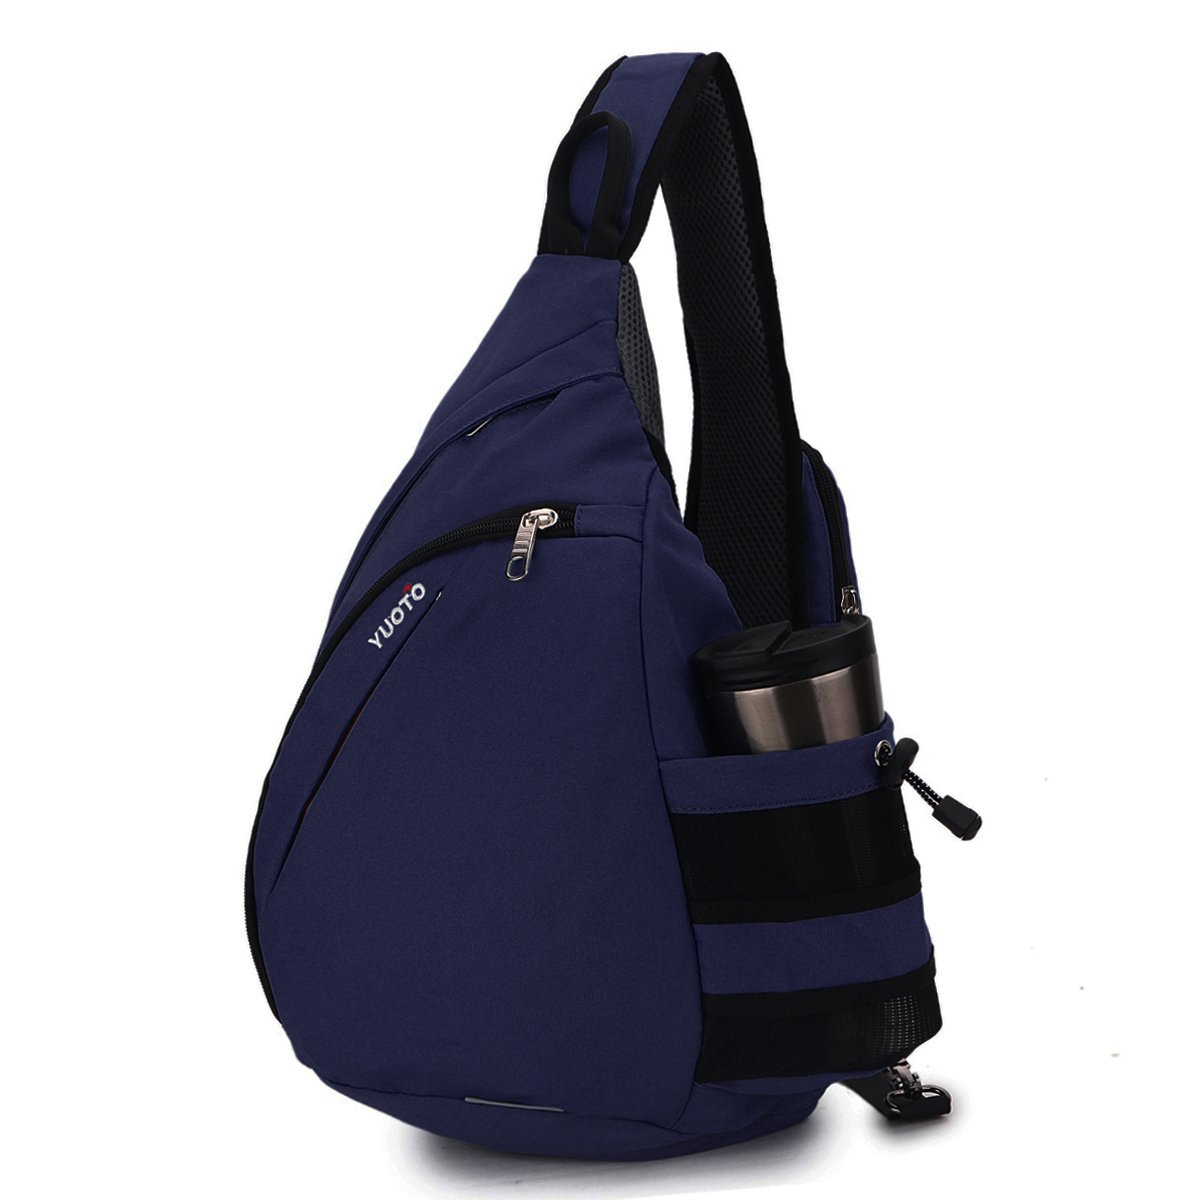 YUOTO Sling Backpack One Strap Crossbody Shoulder Sling Bag